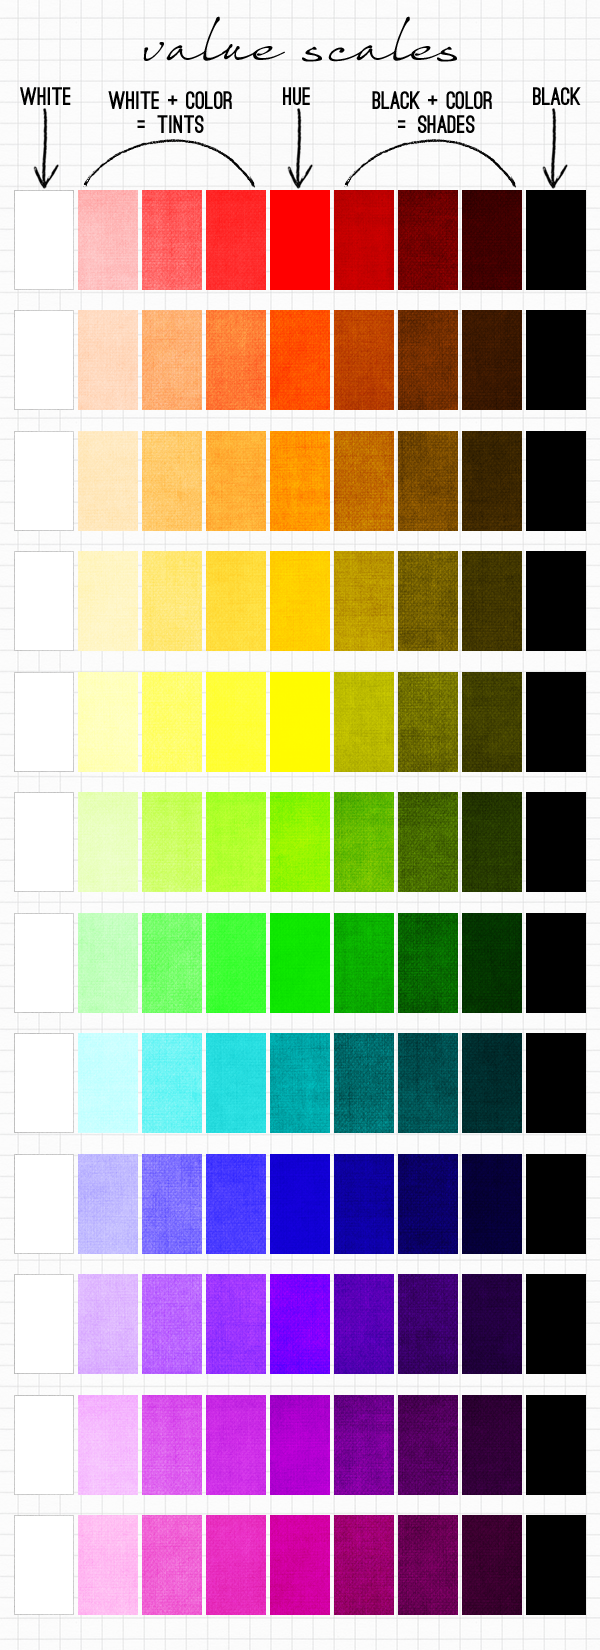 AnatoRef — Color Value Scales Top Image Row 2: Left, Right ...